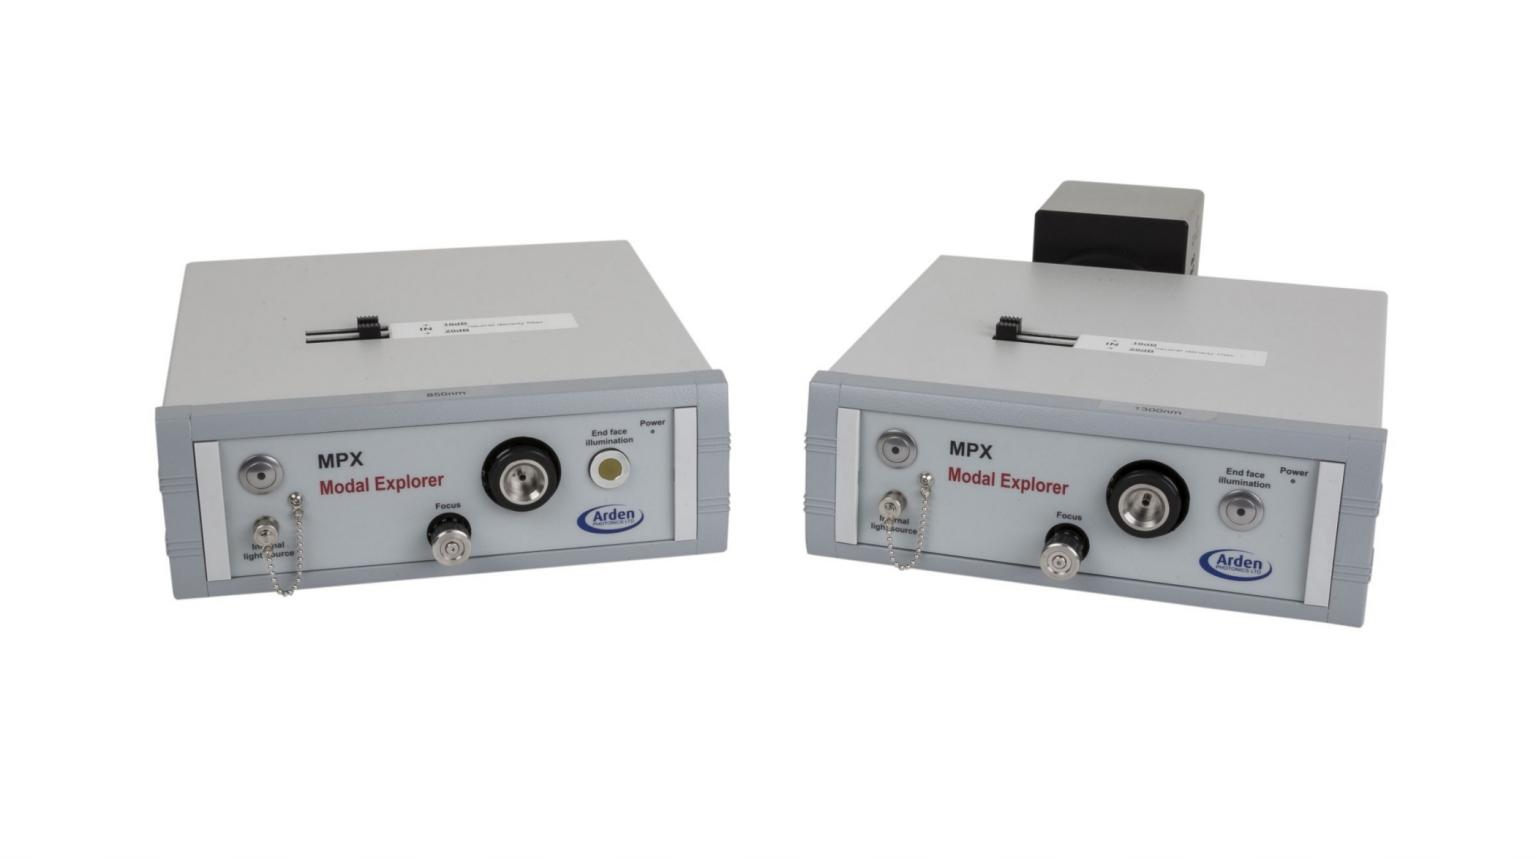 Arden Photonics' MPX-1 and MPX-2 Modal Explorers